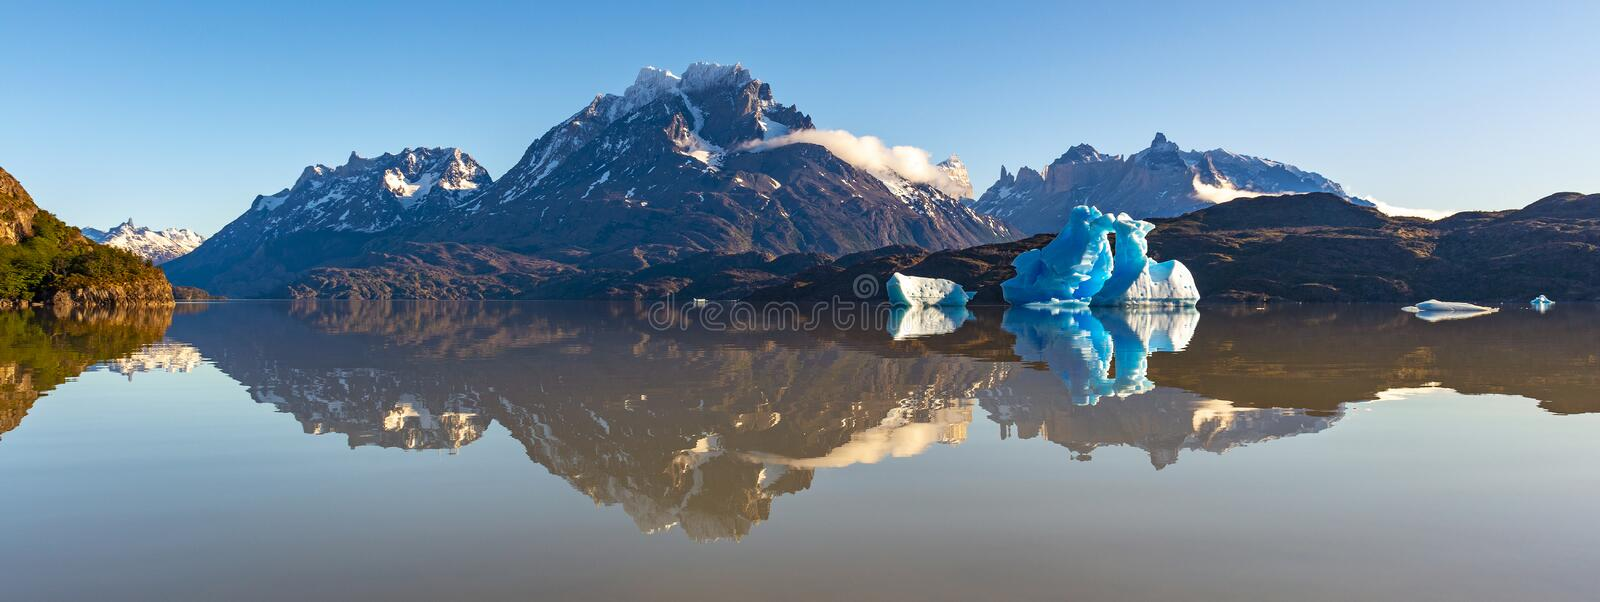 Panoramic Grey Lake, Patagonia, Chile. Panoramic reflection photograph of the Paine Grande and Cuernos del Paine Andes peaks in Lago Grey with blue iceberg at royalty free stock photography